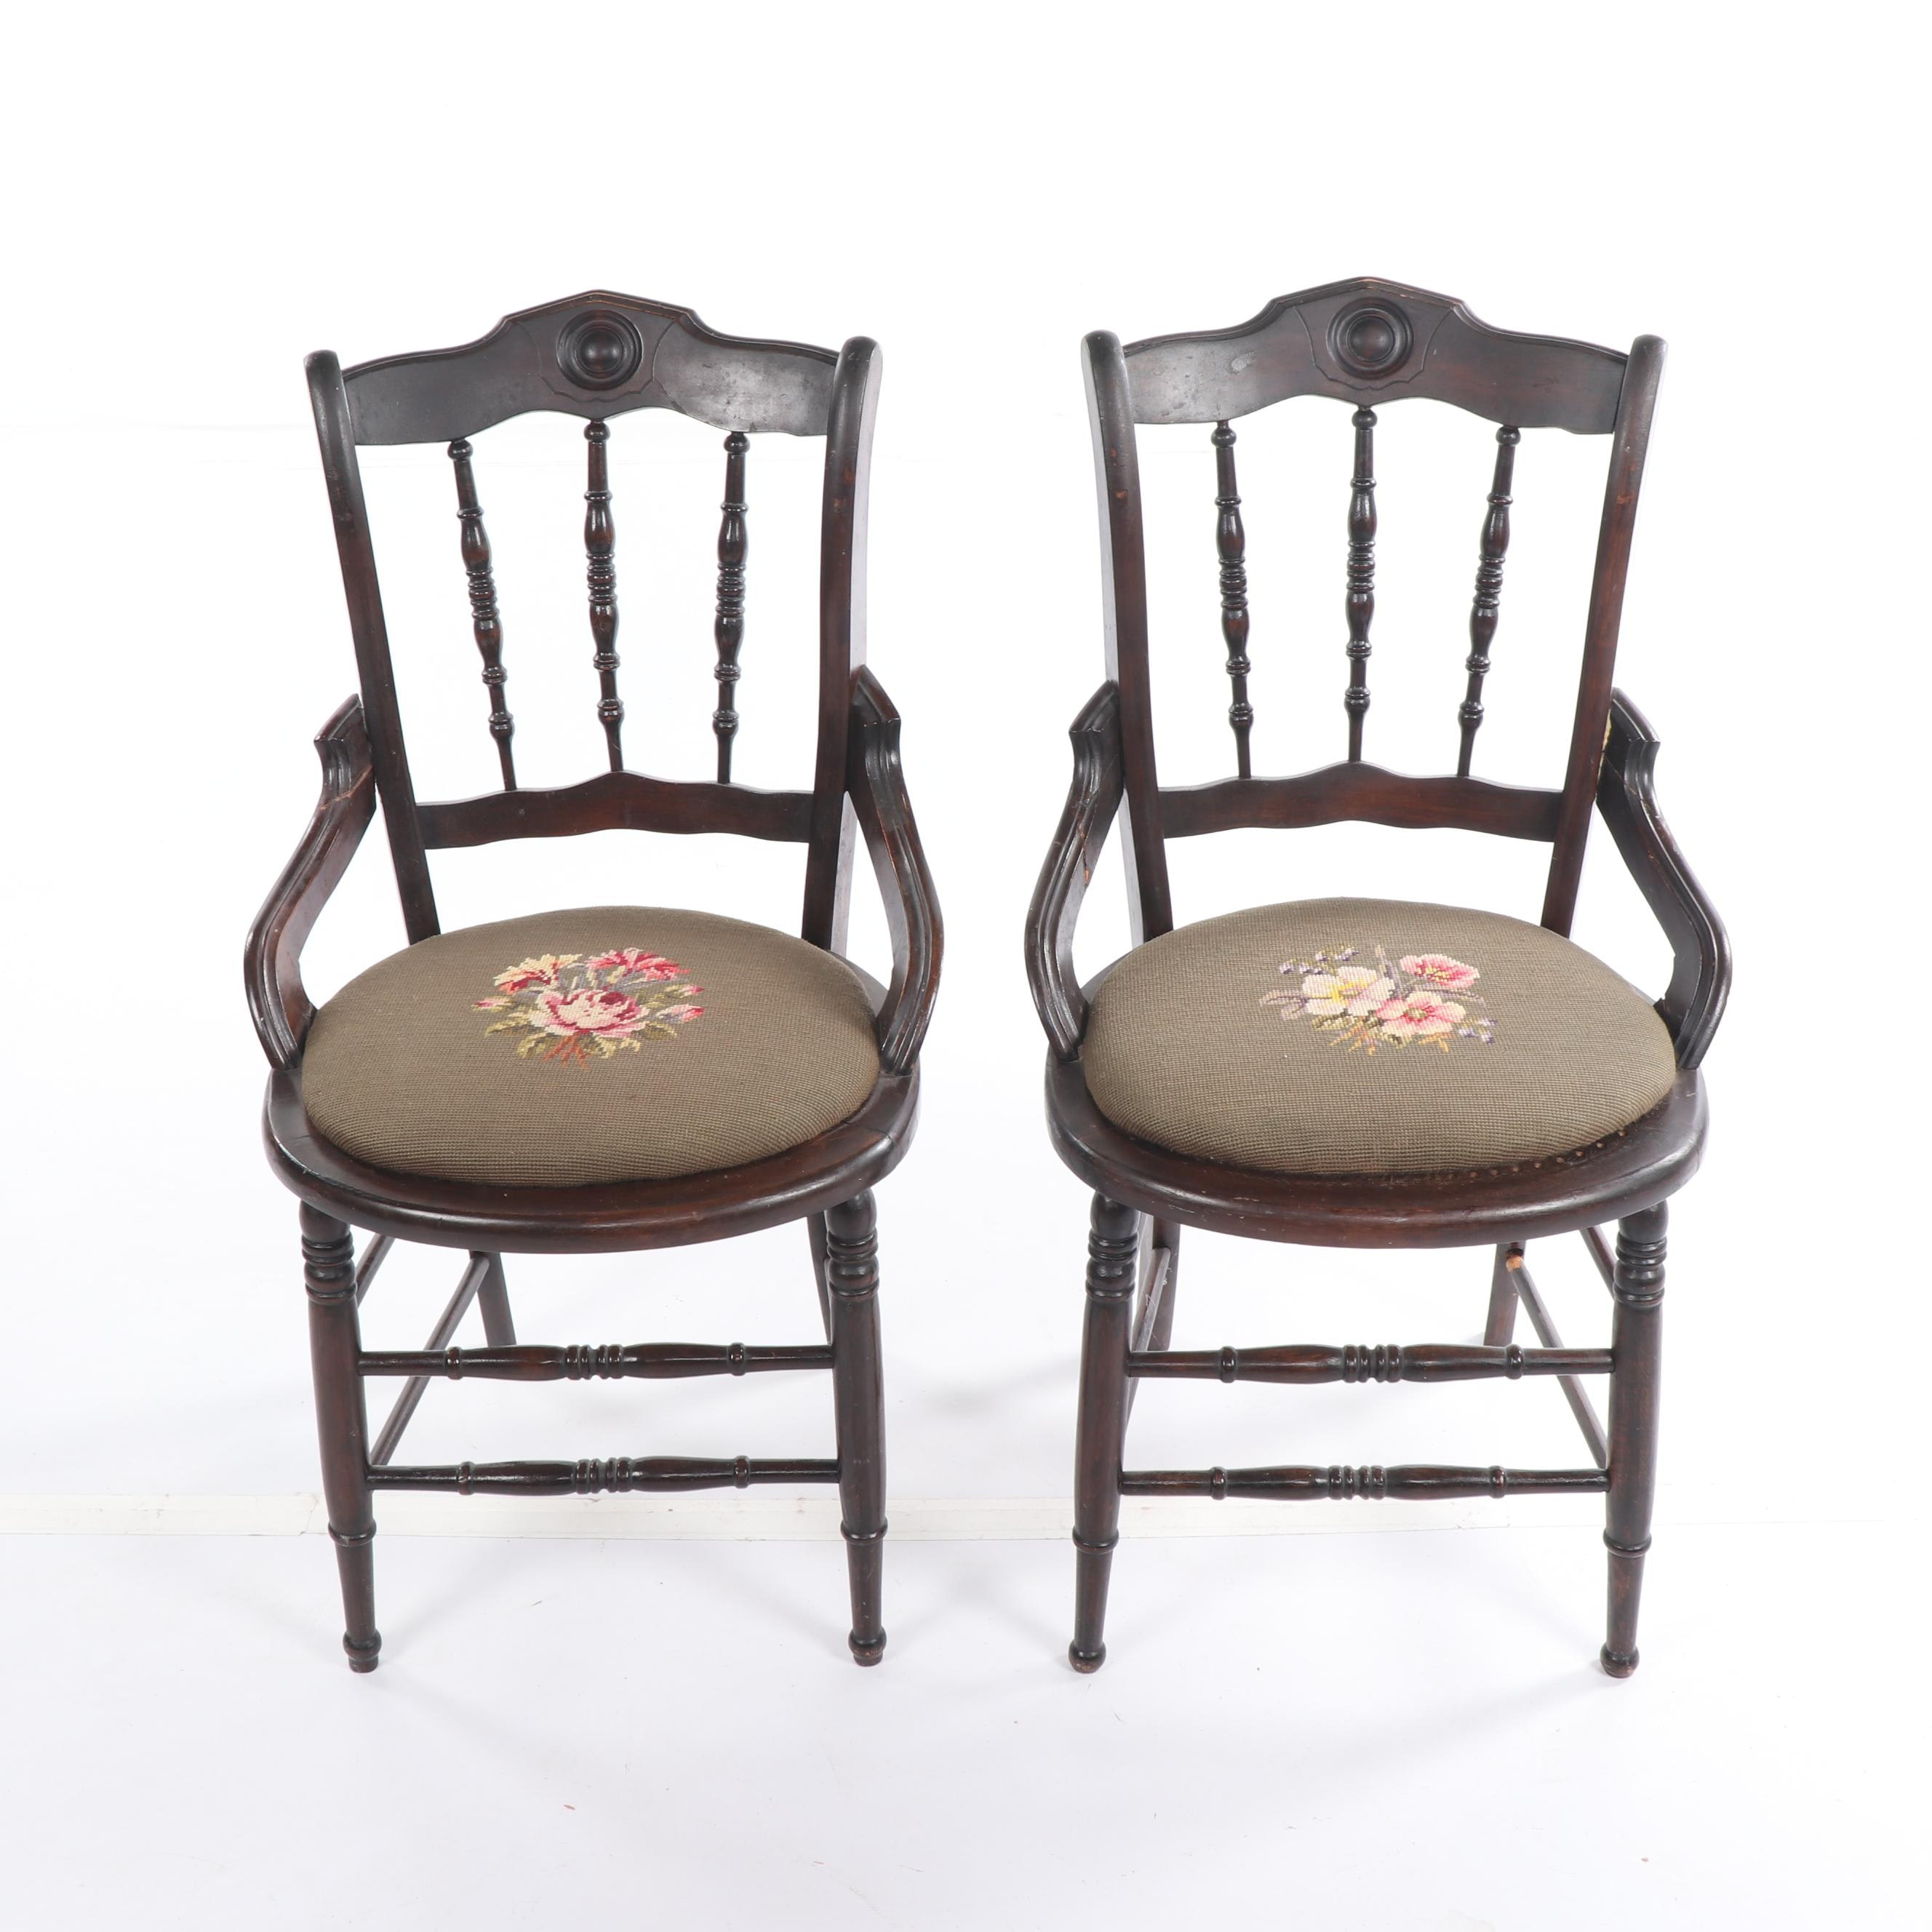 Late Victorian Style Walnut Spindle Back Side Chairs, Early/Mid-20th Century